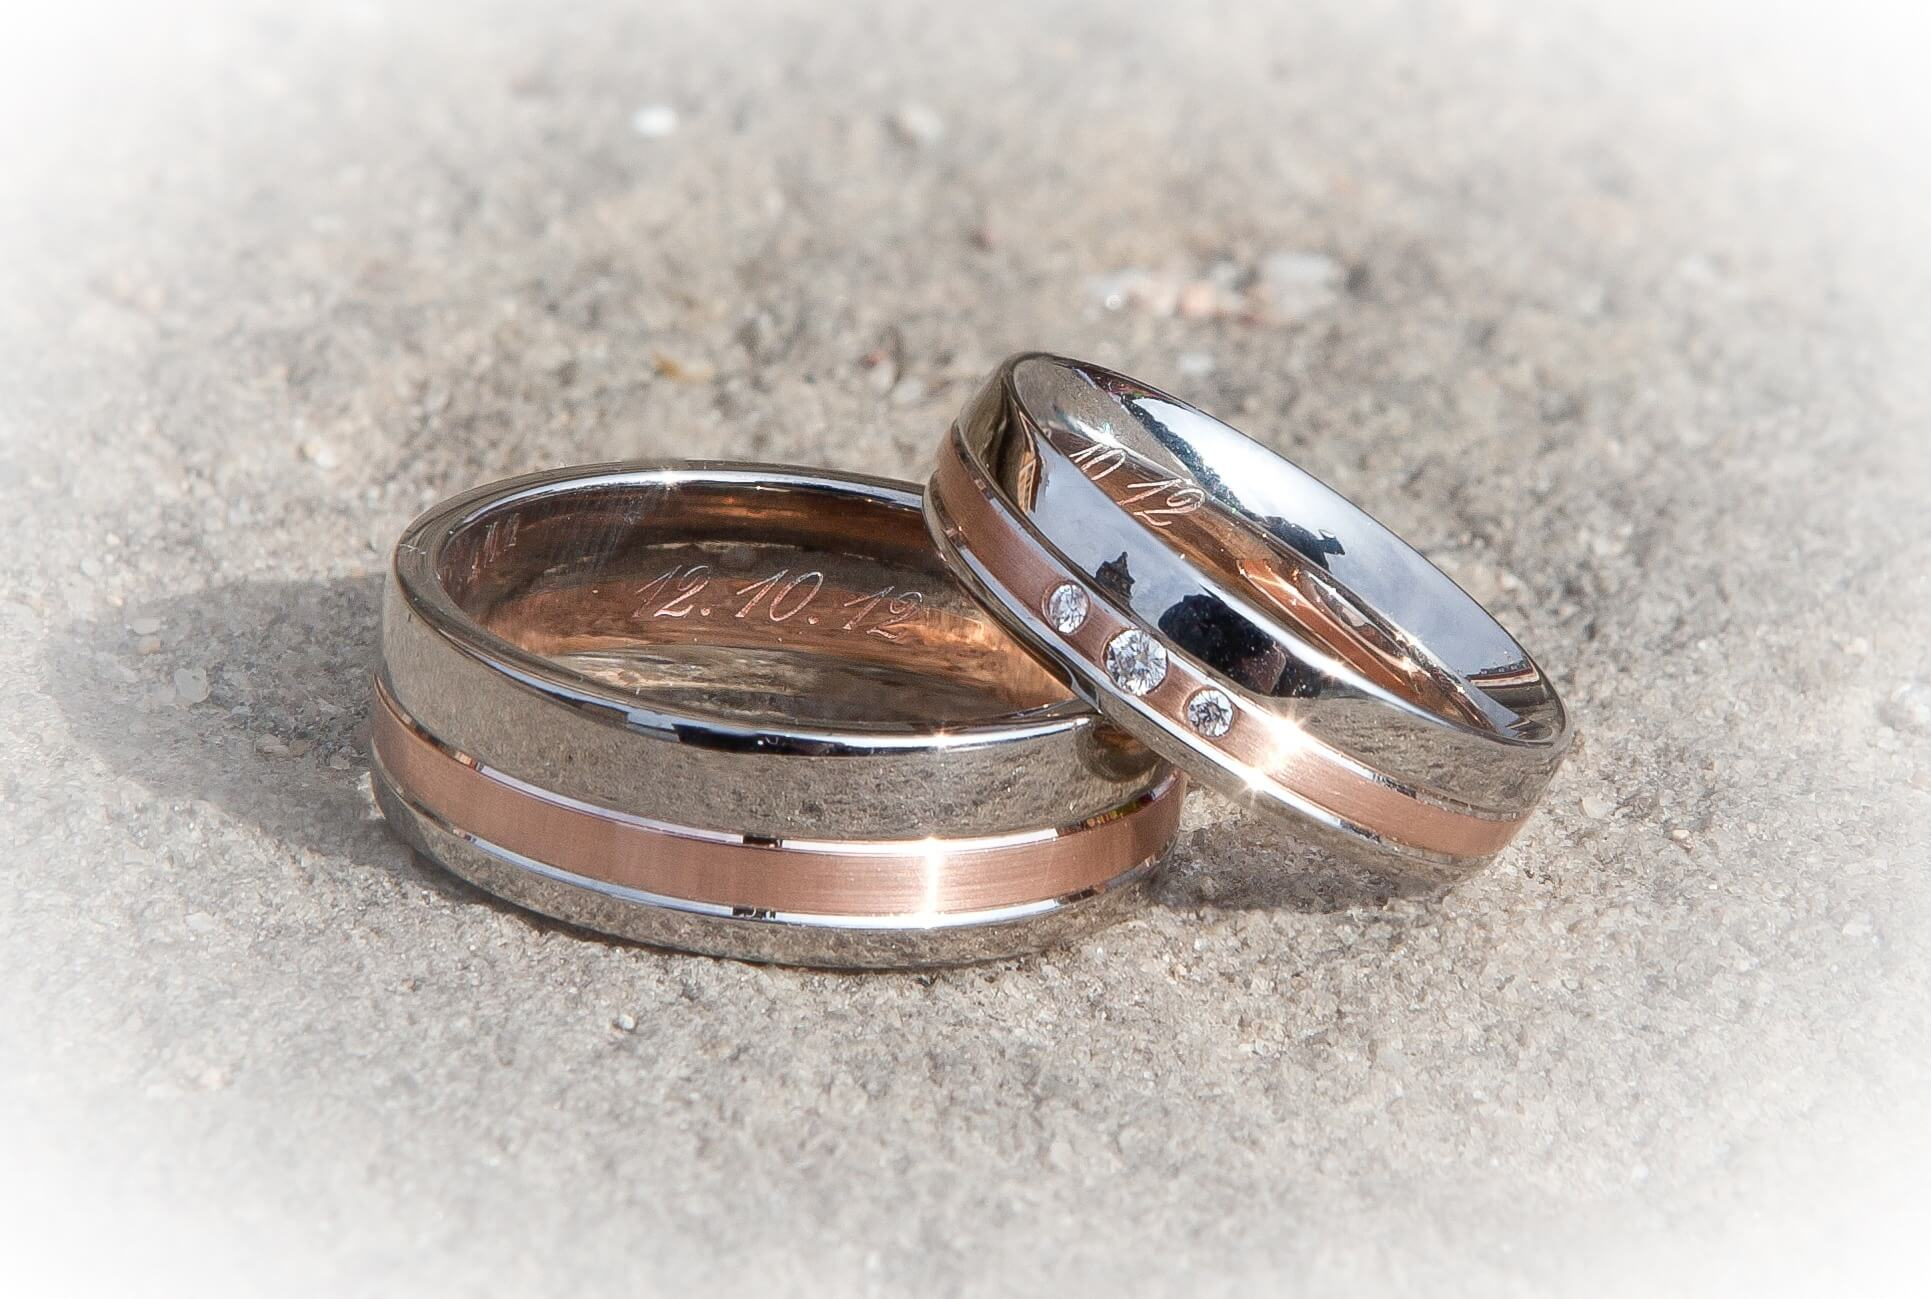 The Tradition Of Exchanging Rings On Wedding And Engagement Dates Back To  Many Years Rings Are Exchanged As A Symbol Of Love And Trust That Couples  Share